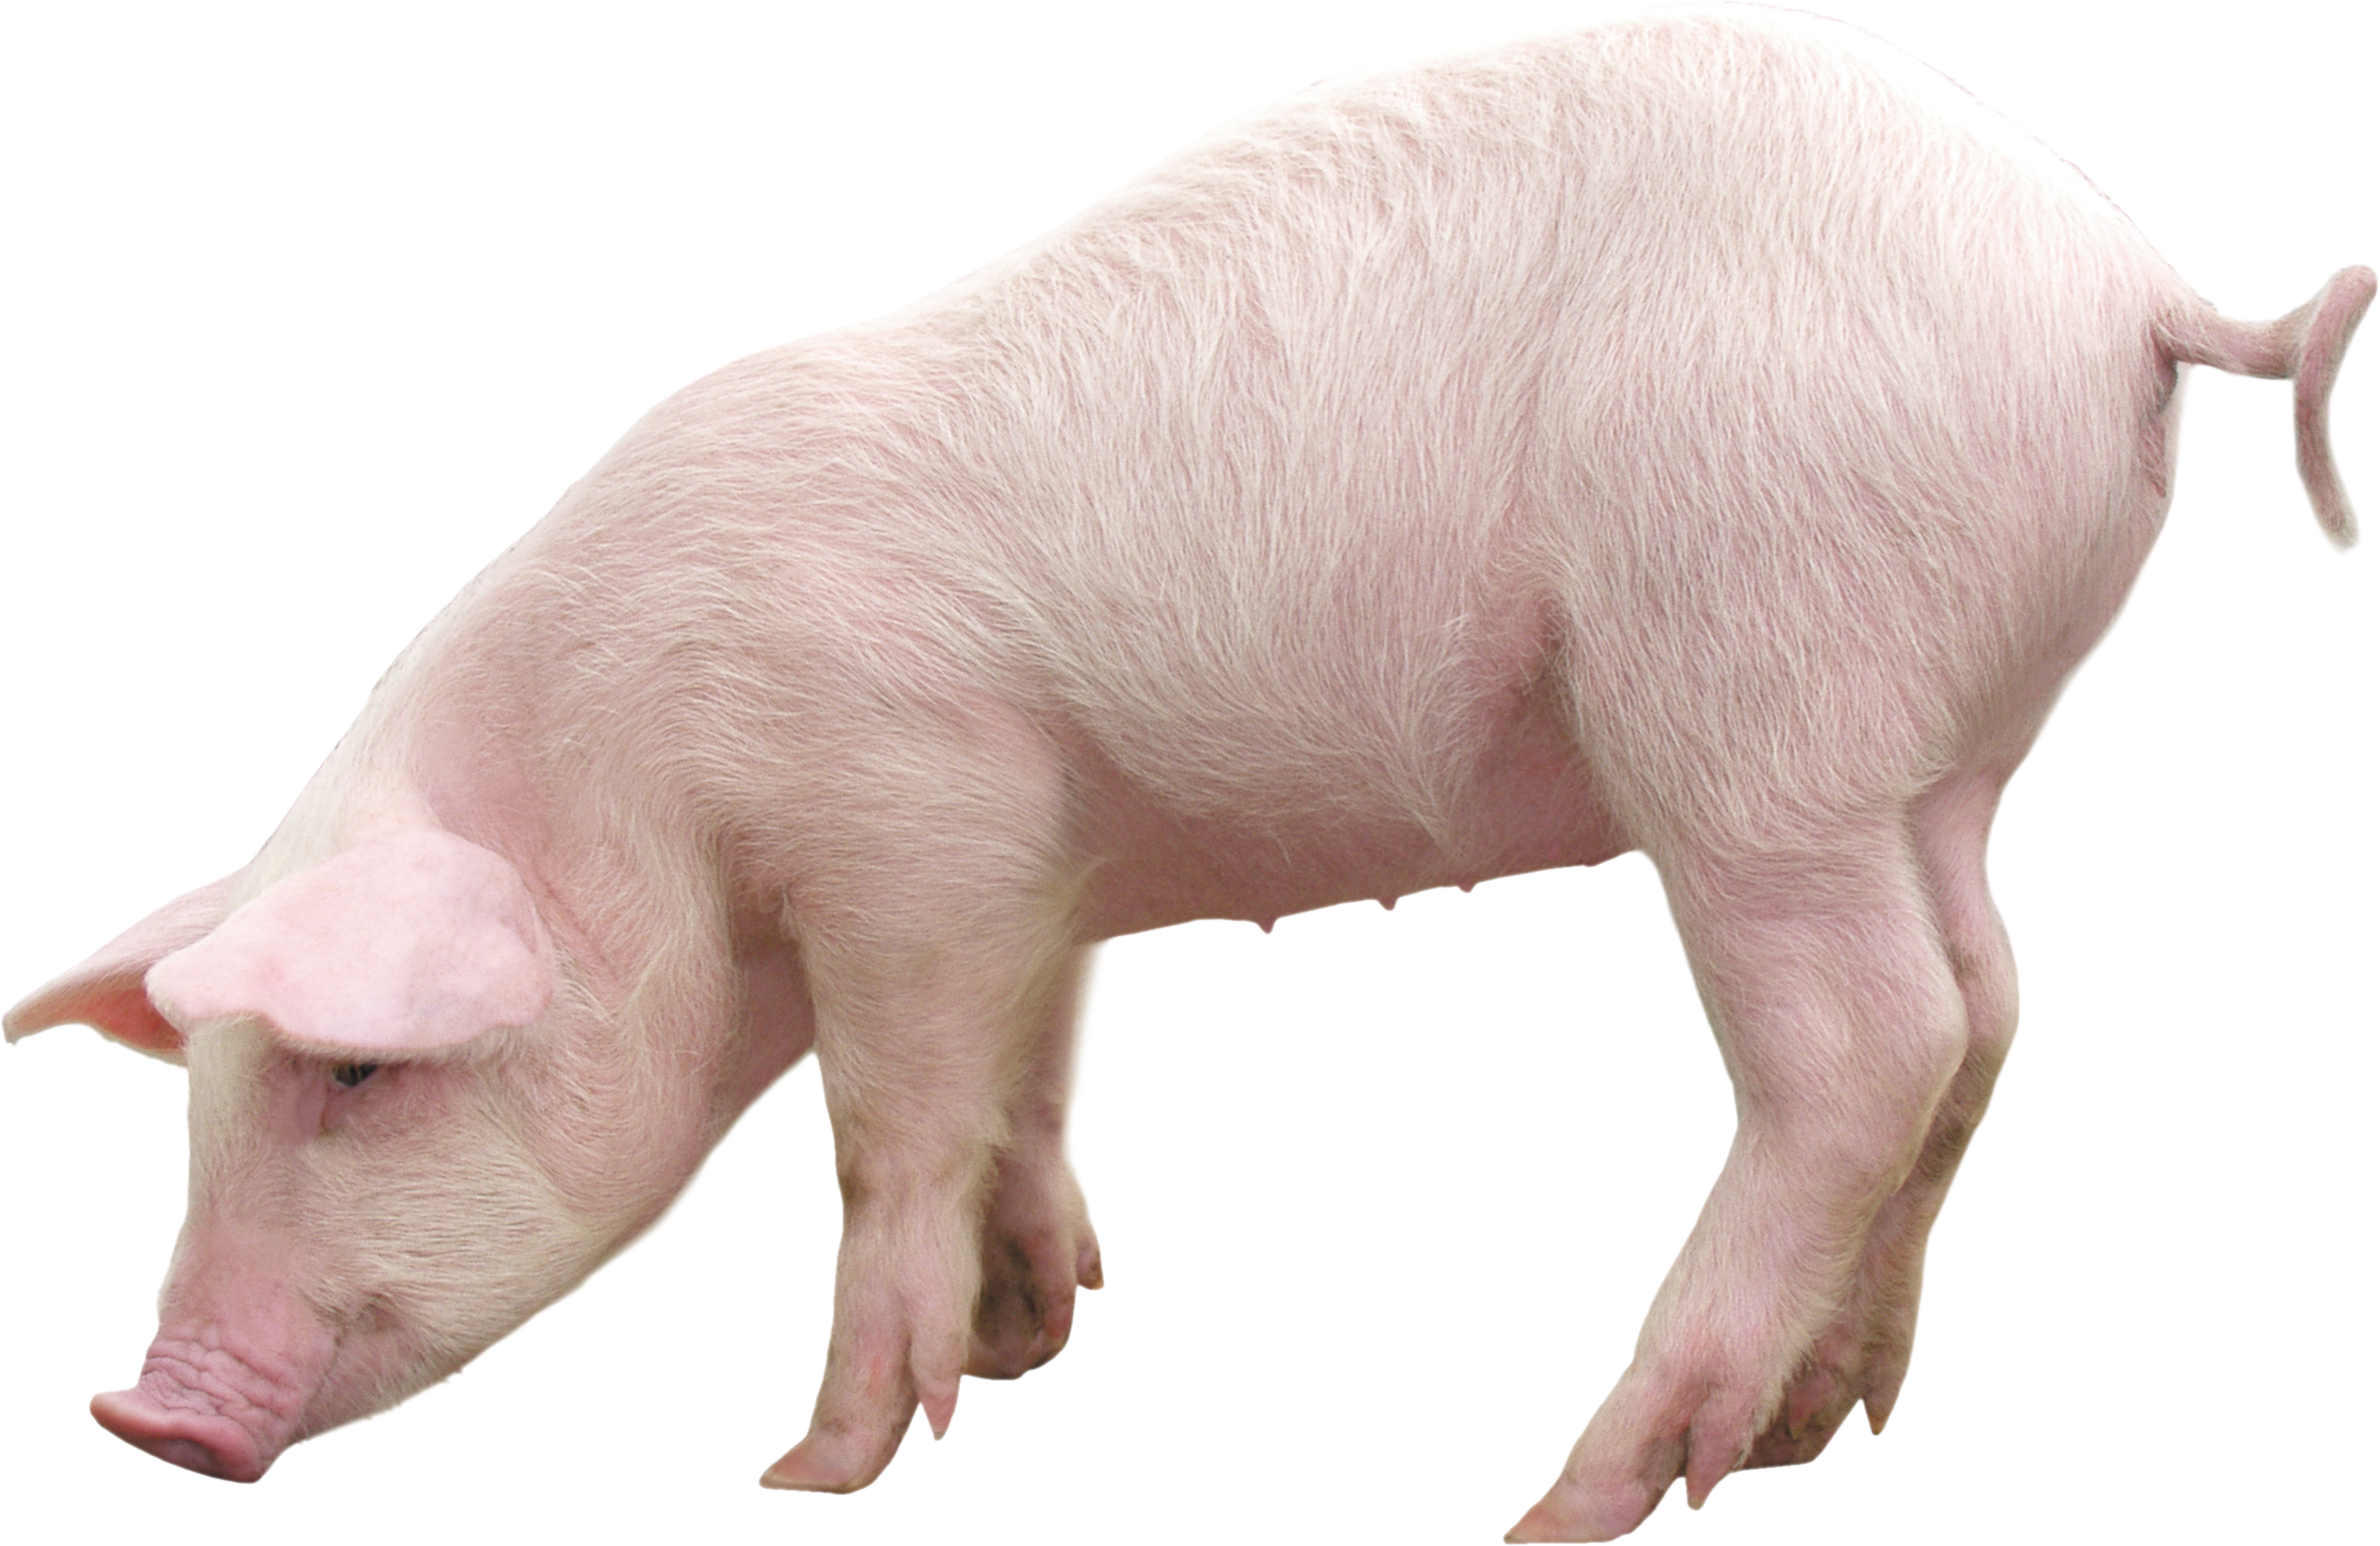 pig PNG image image with transparent background | Animal clipart, Pig